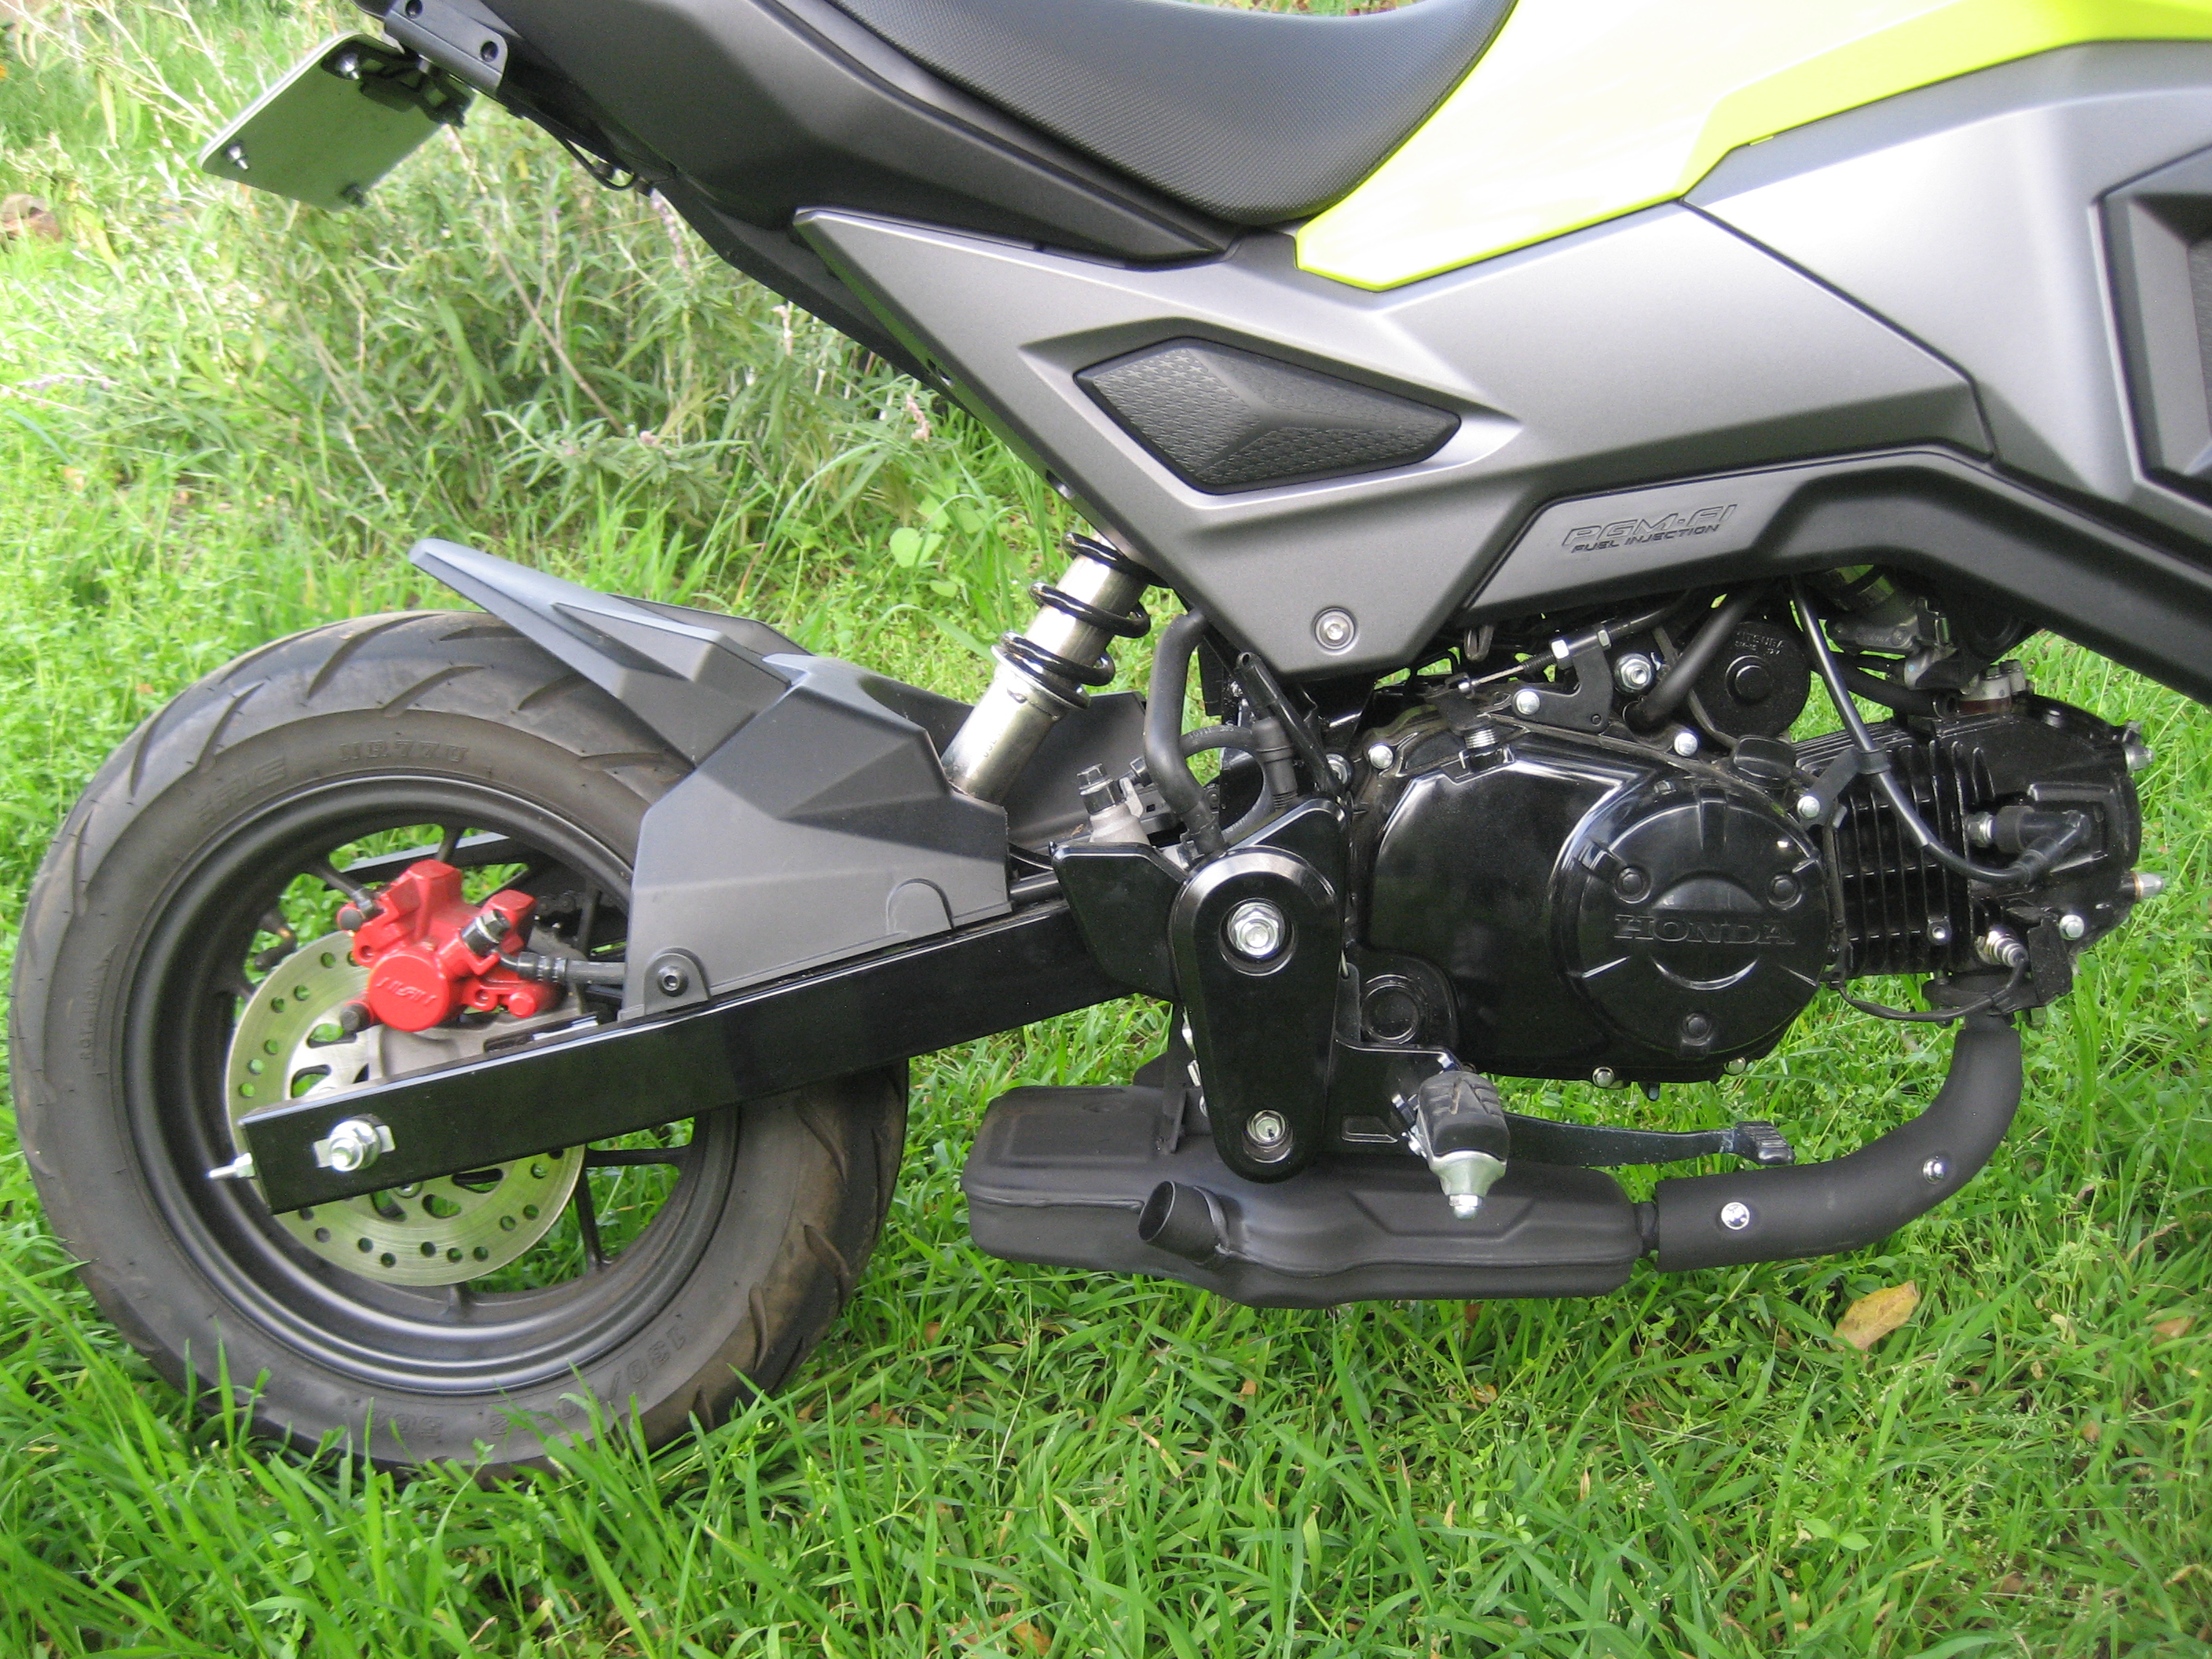 Comprehensive list of Exhausts available for the Honda Grom